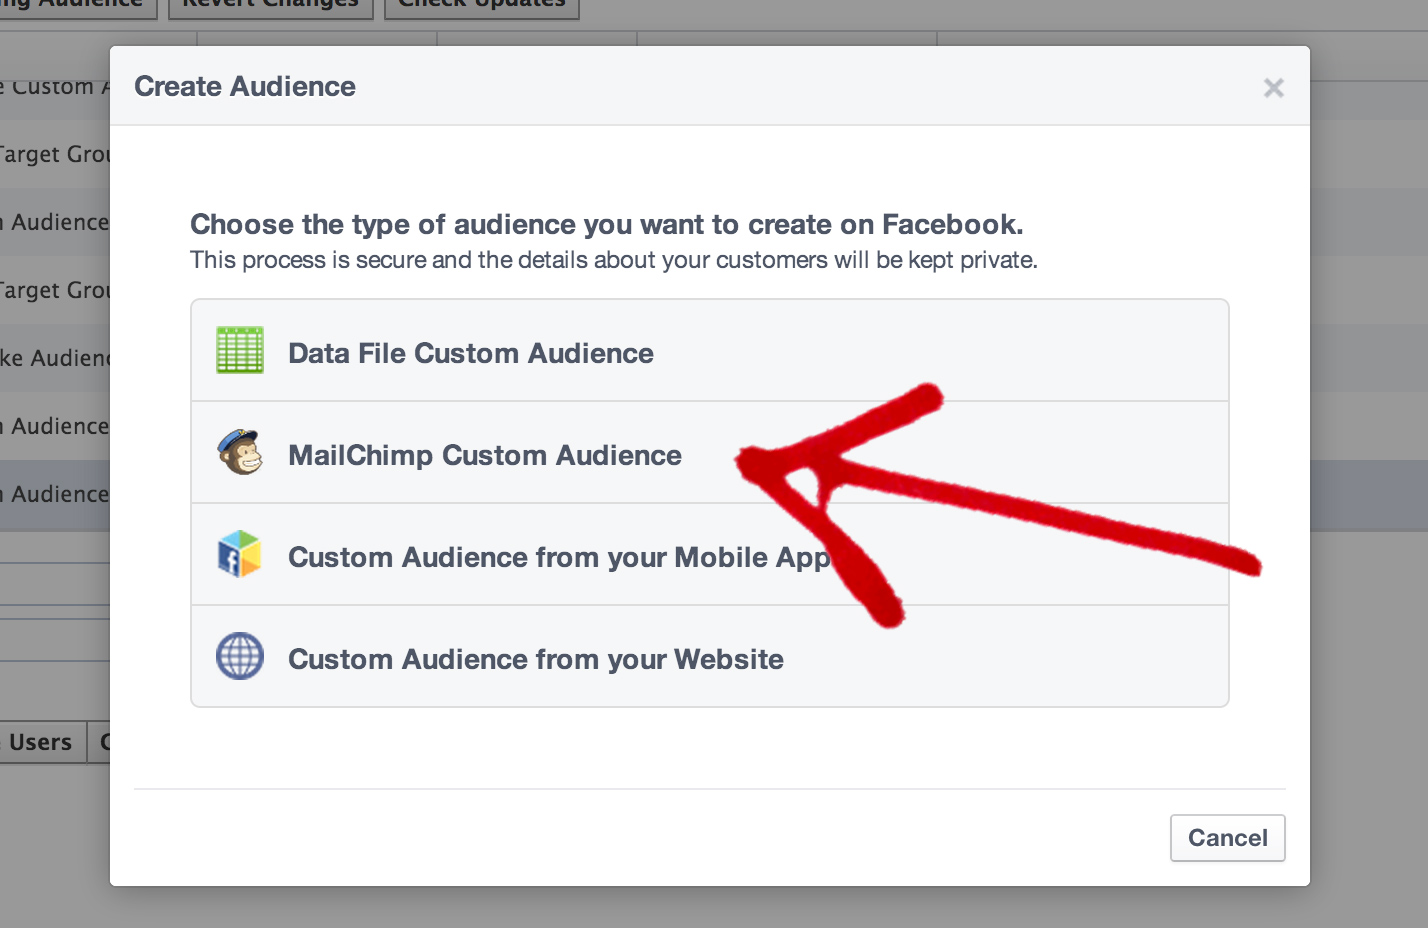 Create a Mailchimp Custom Audience